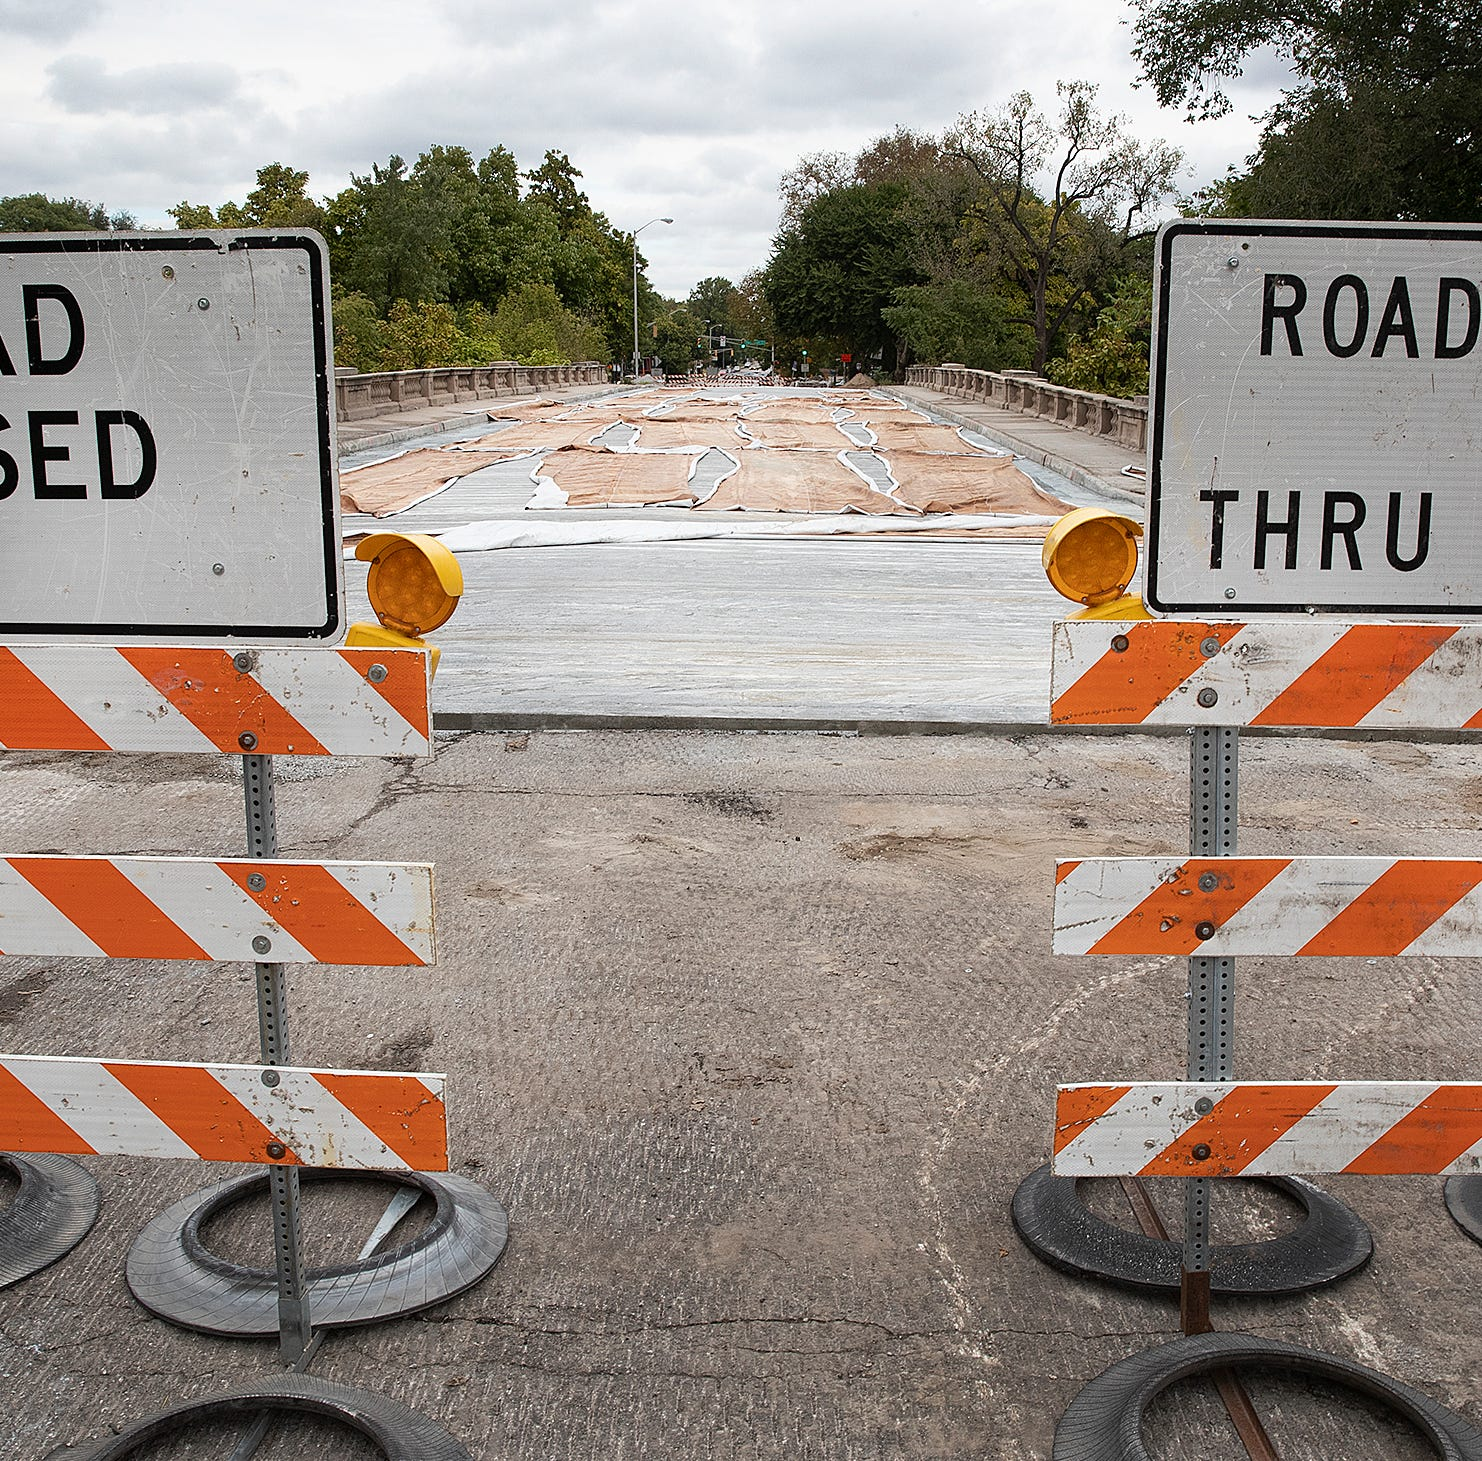 The City-County Council is expected to pass an annual budget tonight that provides money to repair and maintain roadways. Here is the construction project of the College Ave. bridge over Fall Creek Monday, Oct. 15, 2018.